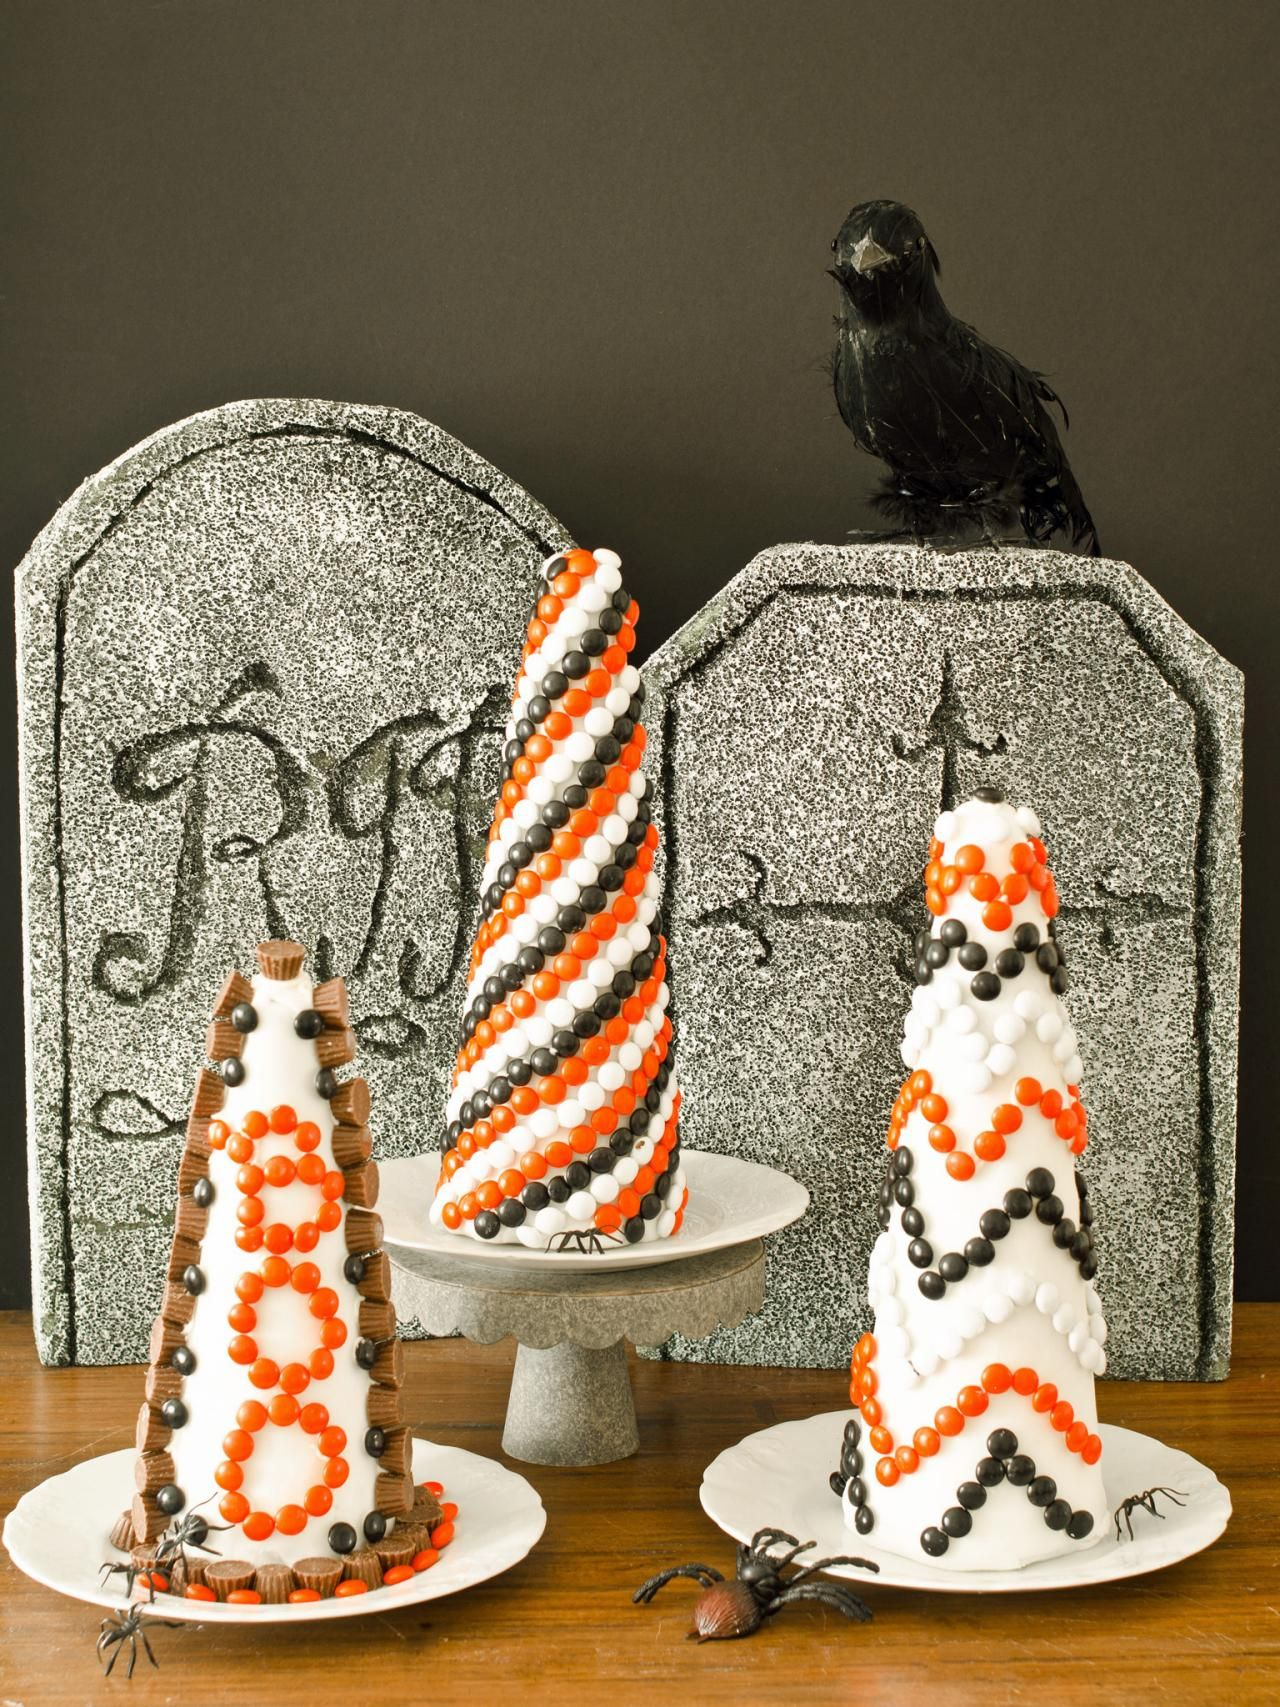 65+ DIY Halloween Decorations  Decorating Ideas Halloween ideas - How To Make Halloween Decorations